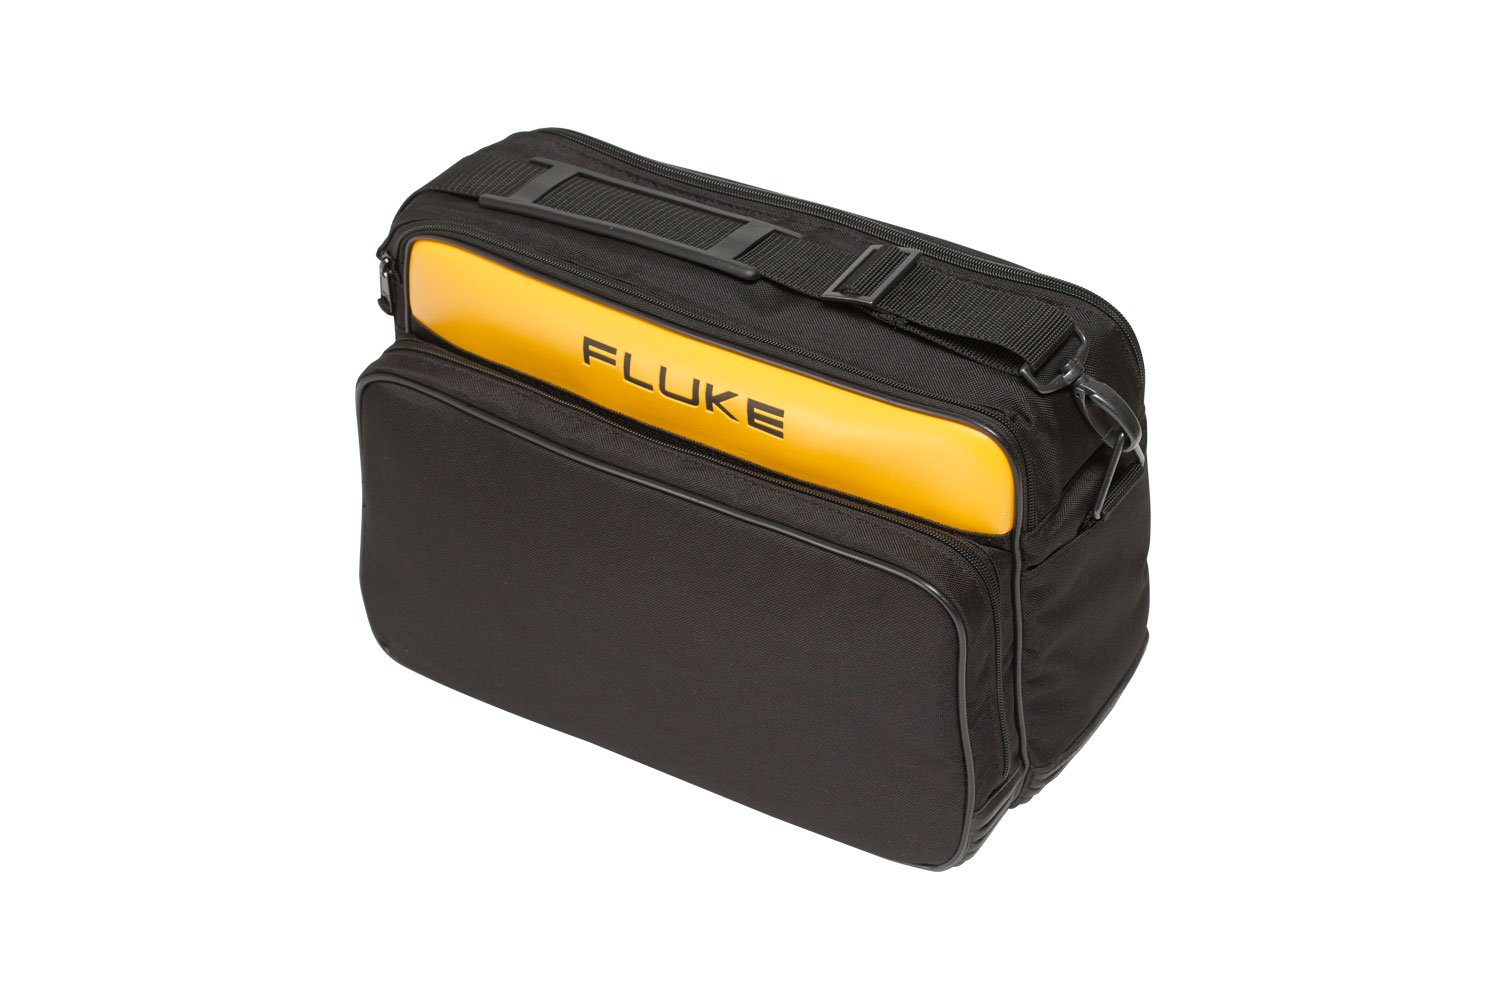 Fluke C345 Soft Carrying Case Polyester Black/yellow